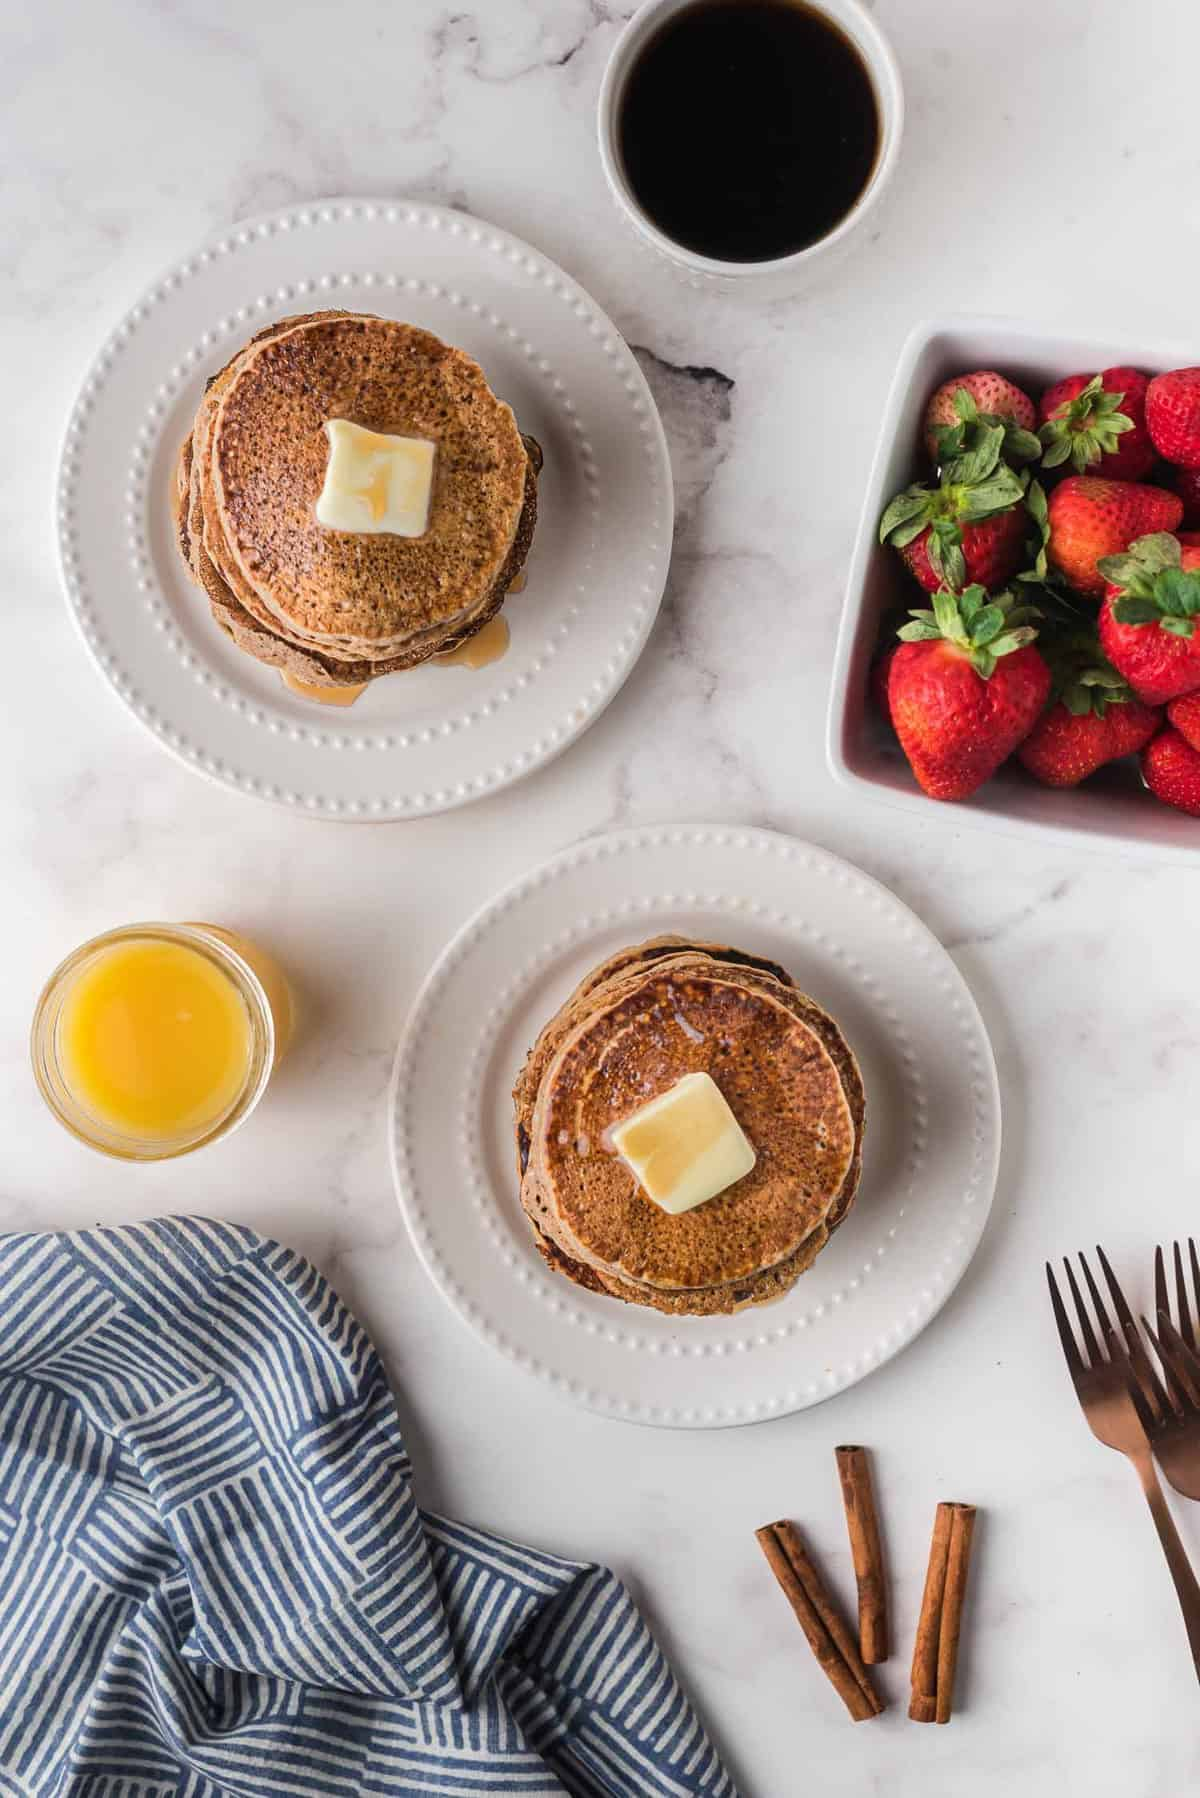 Overhead view of two plates of butter topped pancakes, with fruit, coffee, and orange juice nearby.